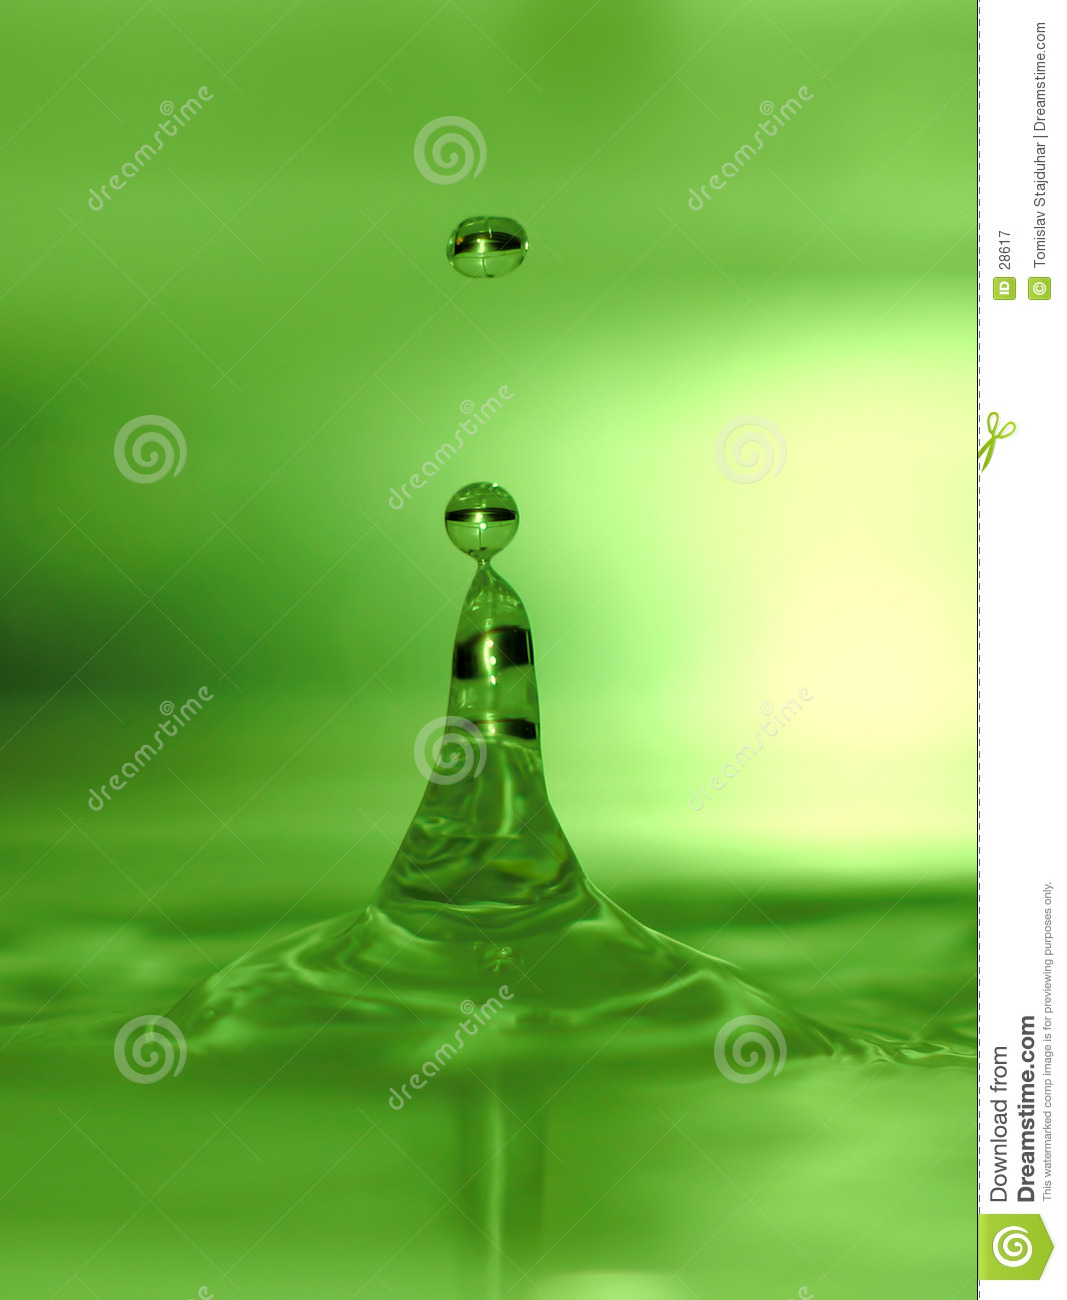 Lime green water drops